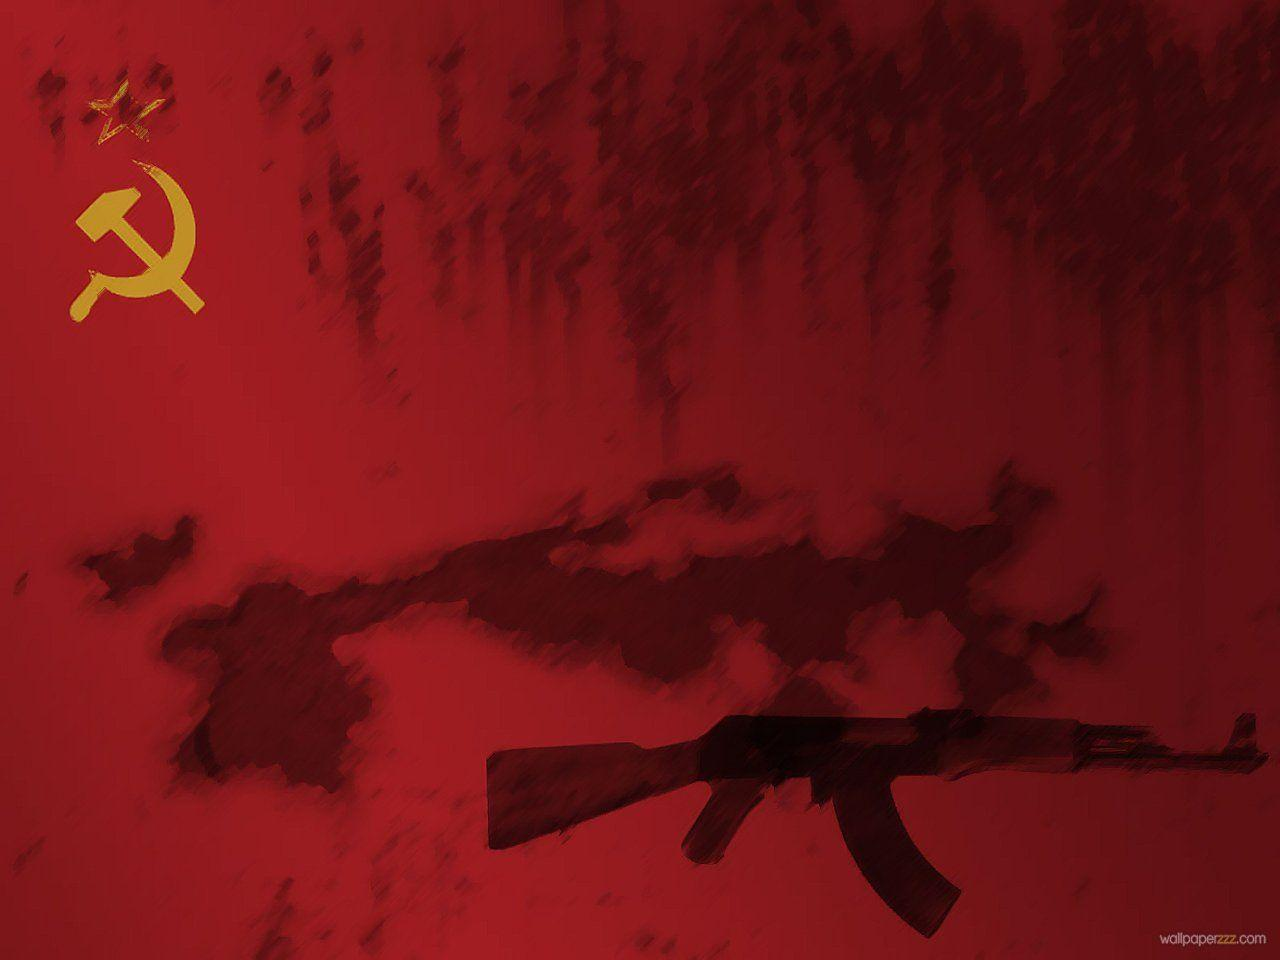 Image For > Soviet Union Wallpapers Hd